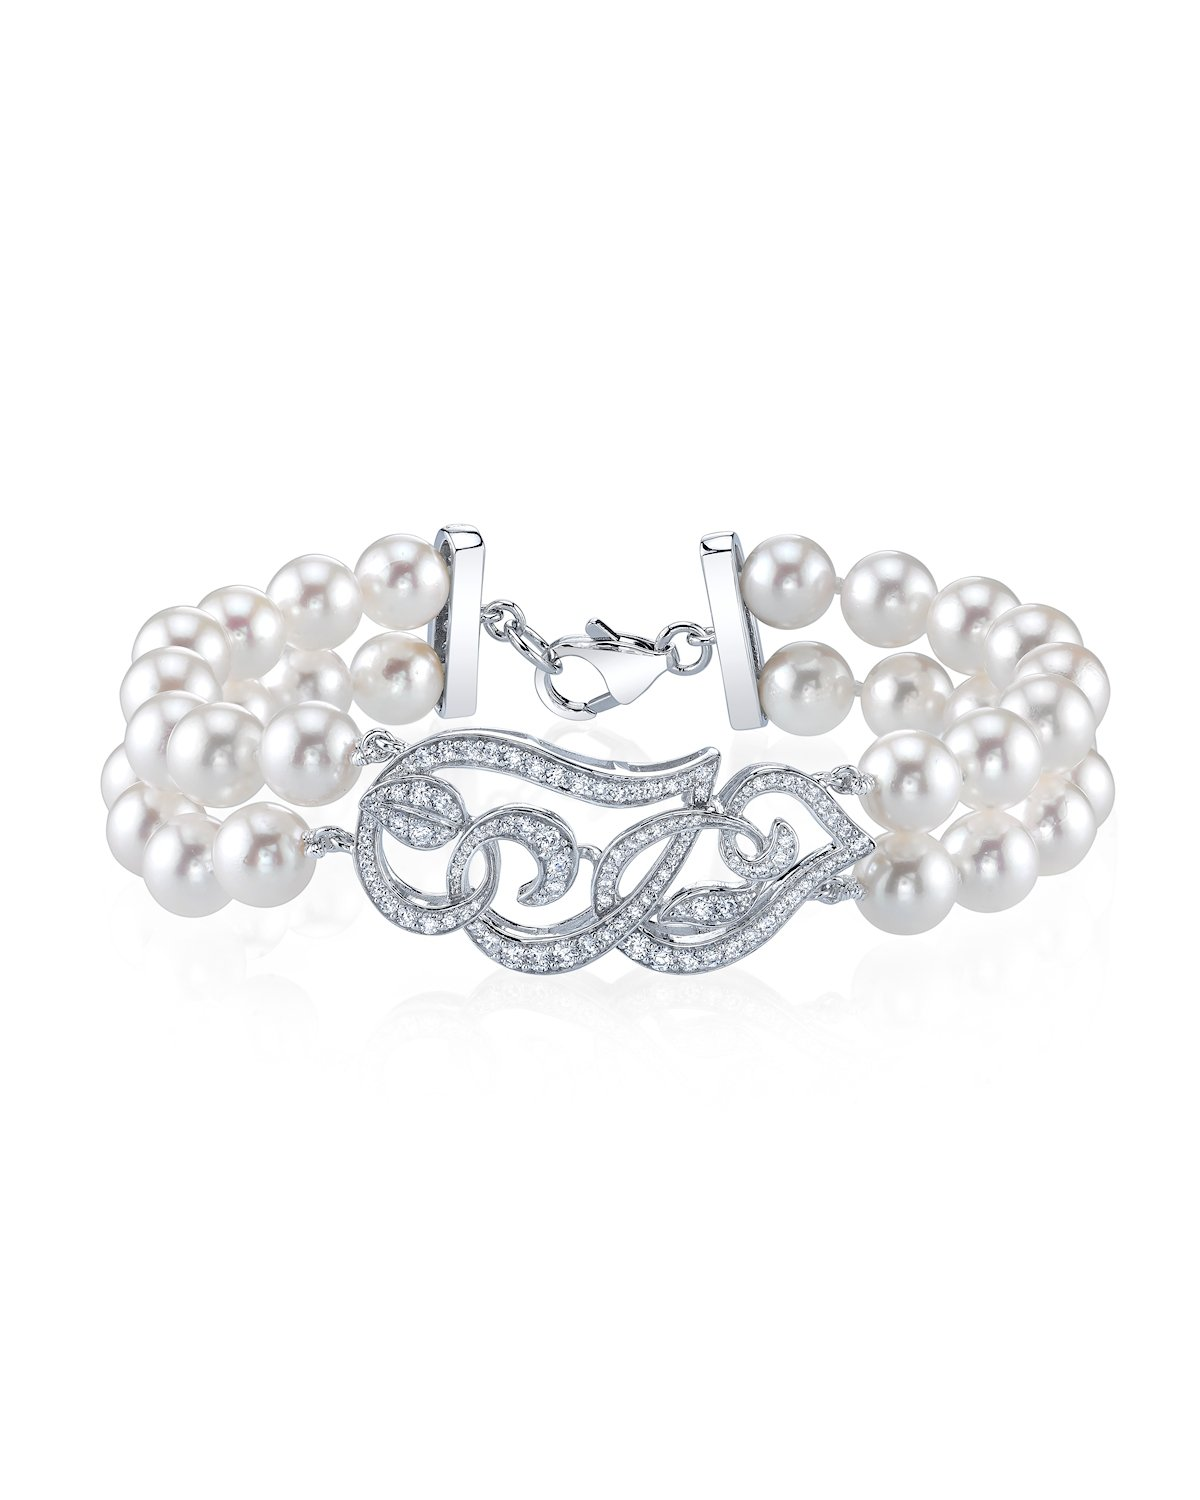 White Freshwater Cultured Pearl & Cubic Zirconia Accent Violet Bracelet